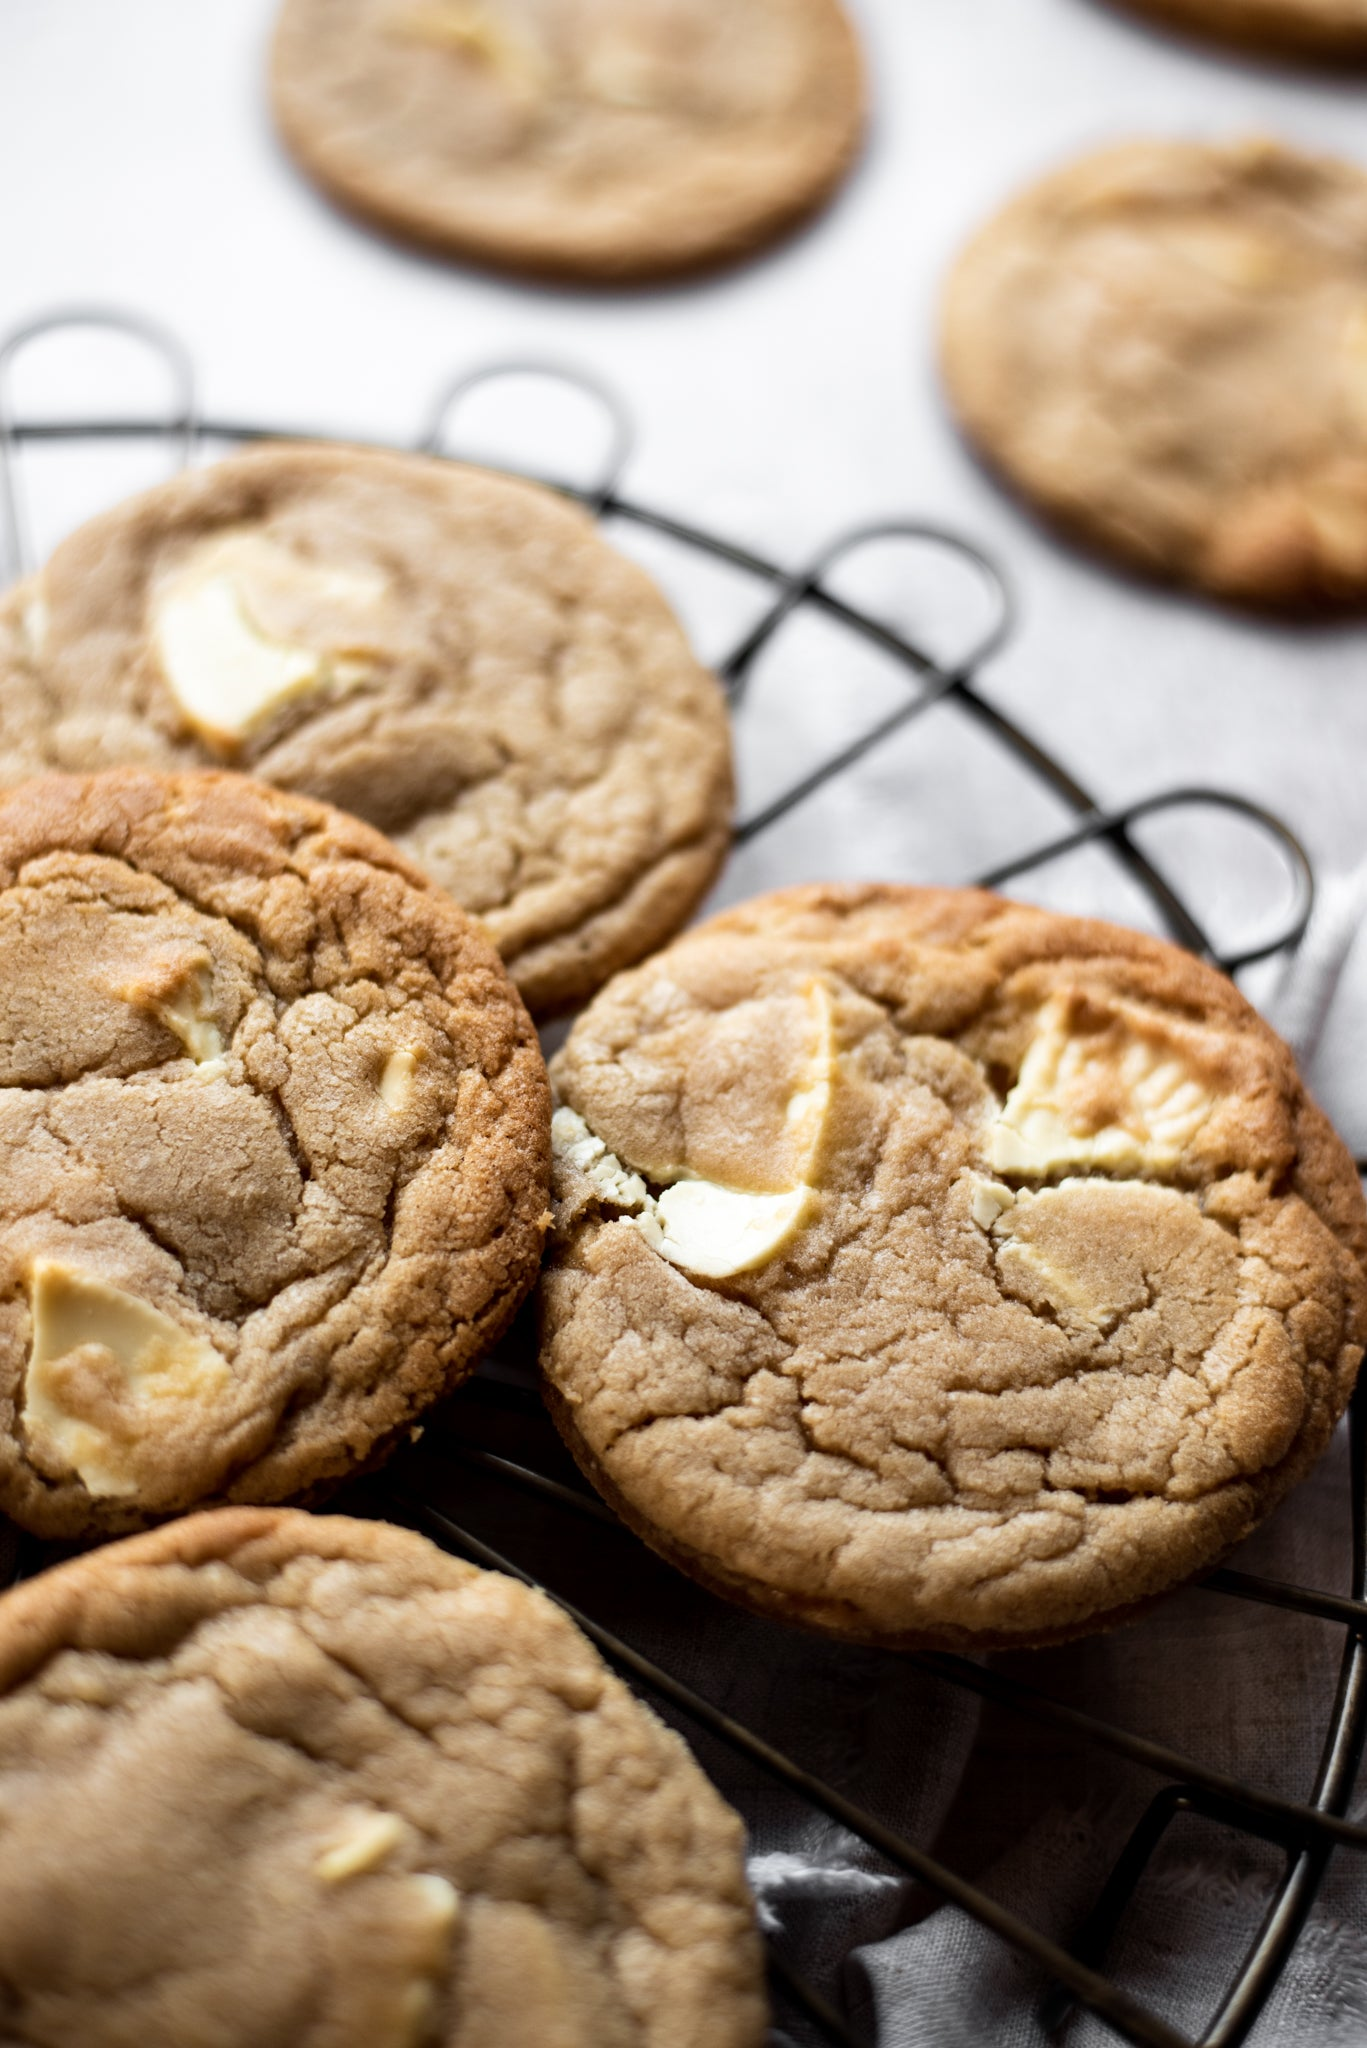 Copycat-Millies-Cookies-Terrys-White-Chocolate-Orange-WEB-RES-1.jpg